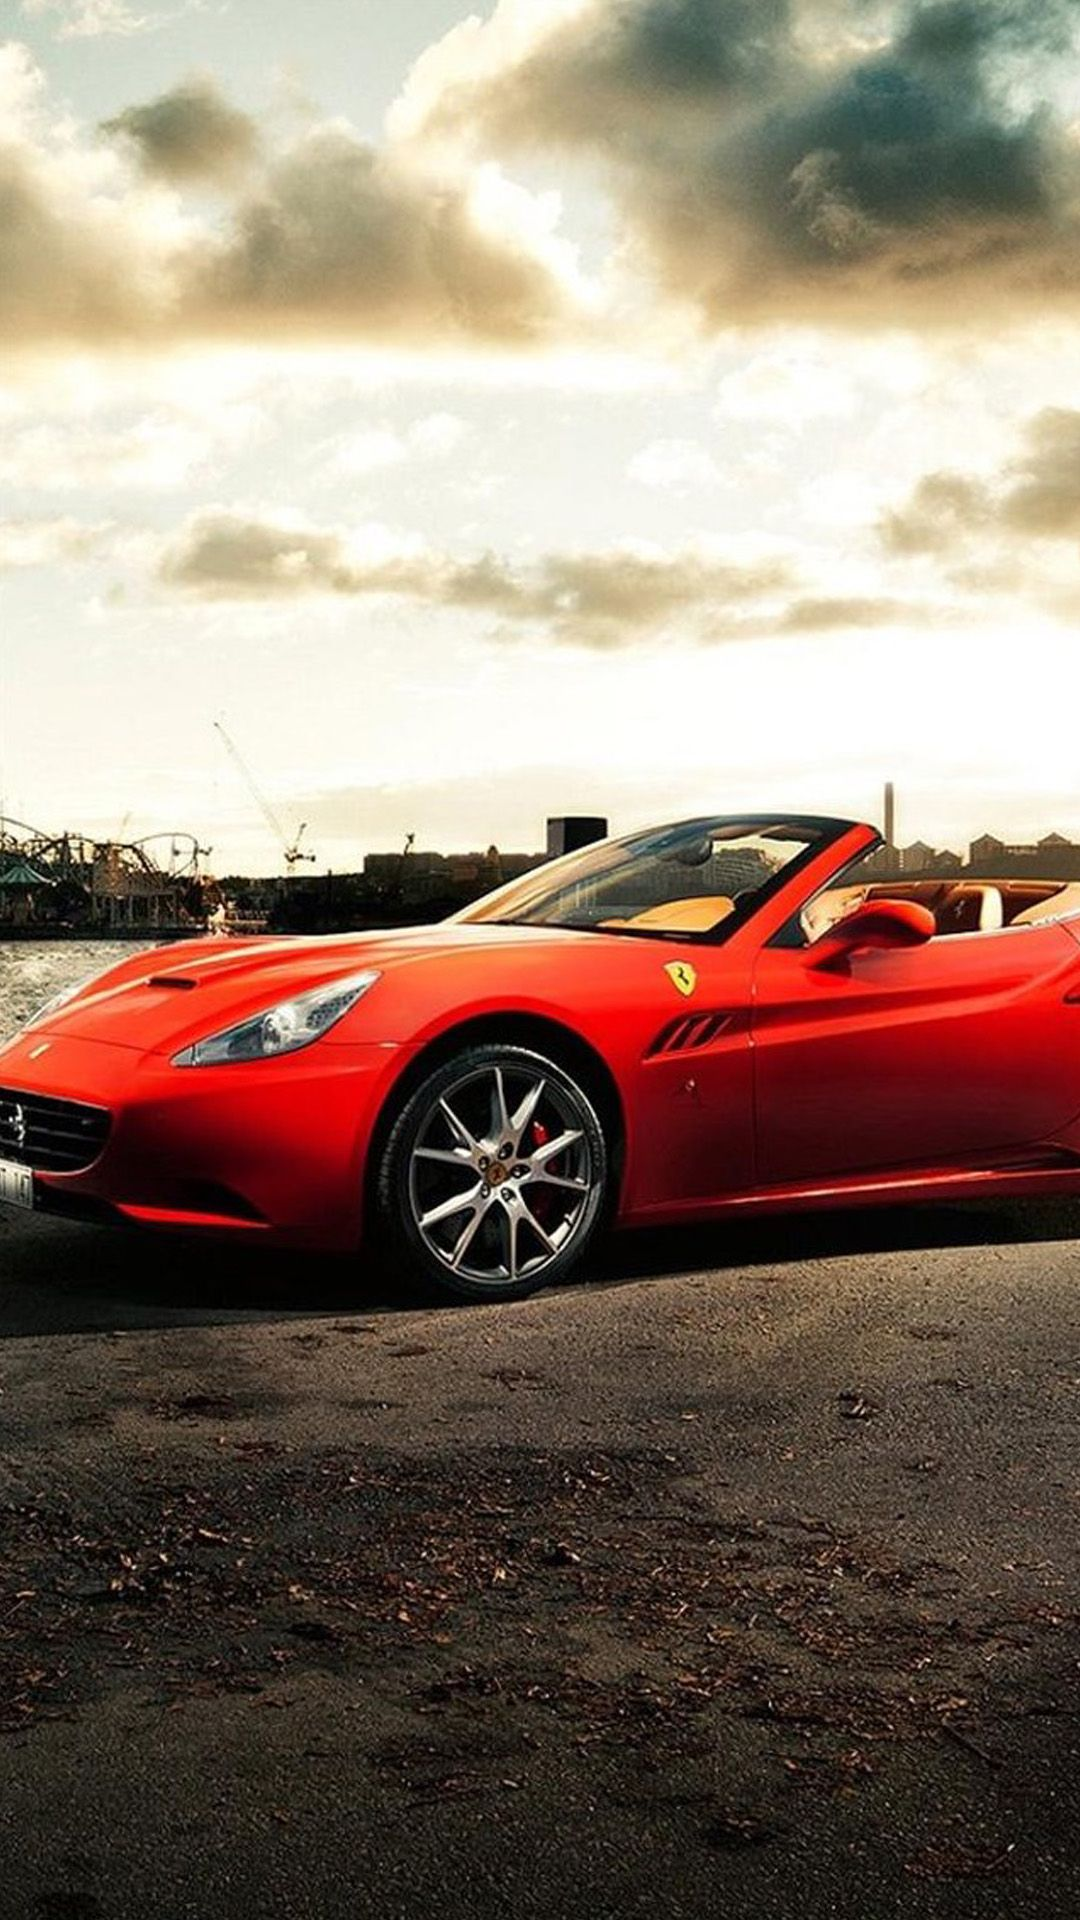 TAP AND GET THE FREE APP! Men's World Ferrari Red Luxury